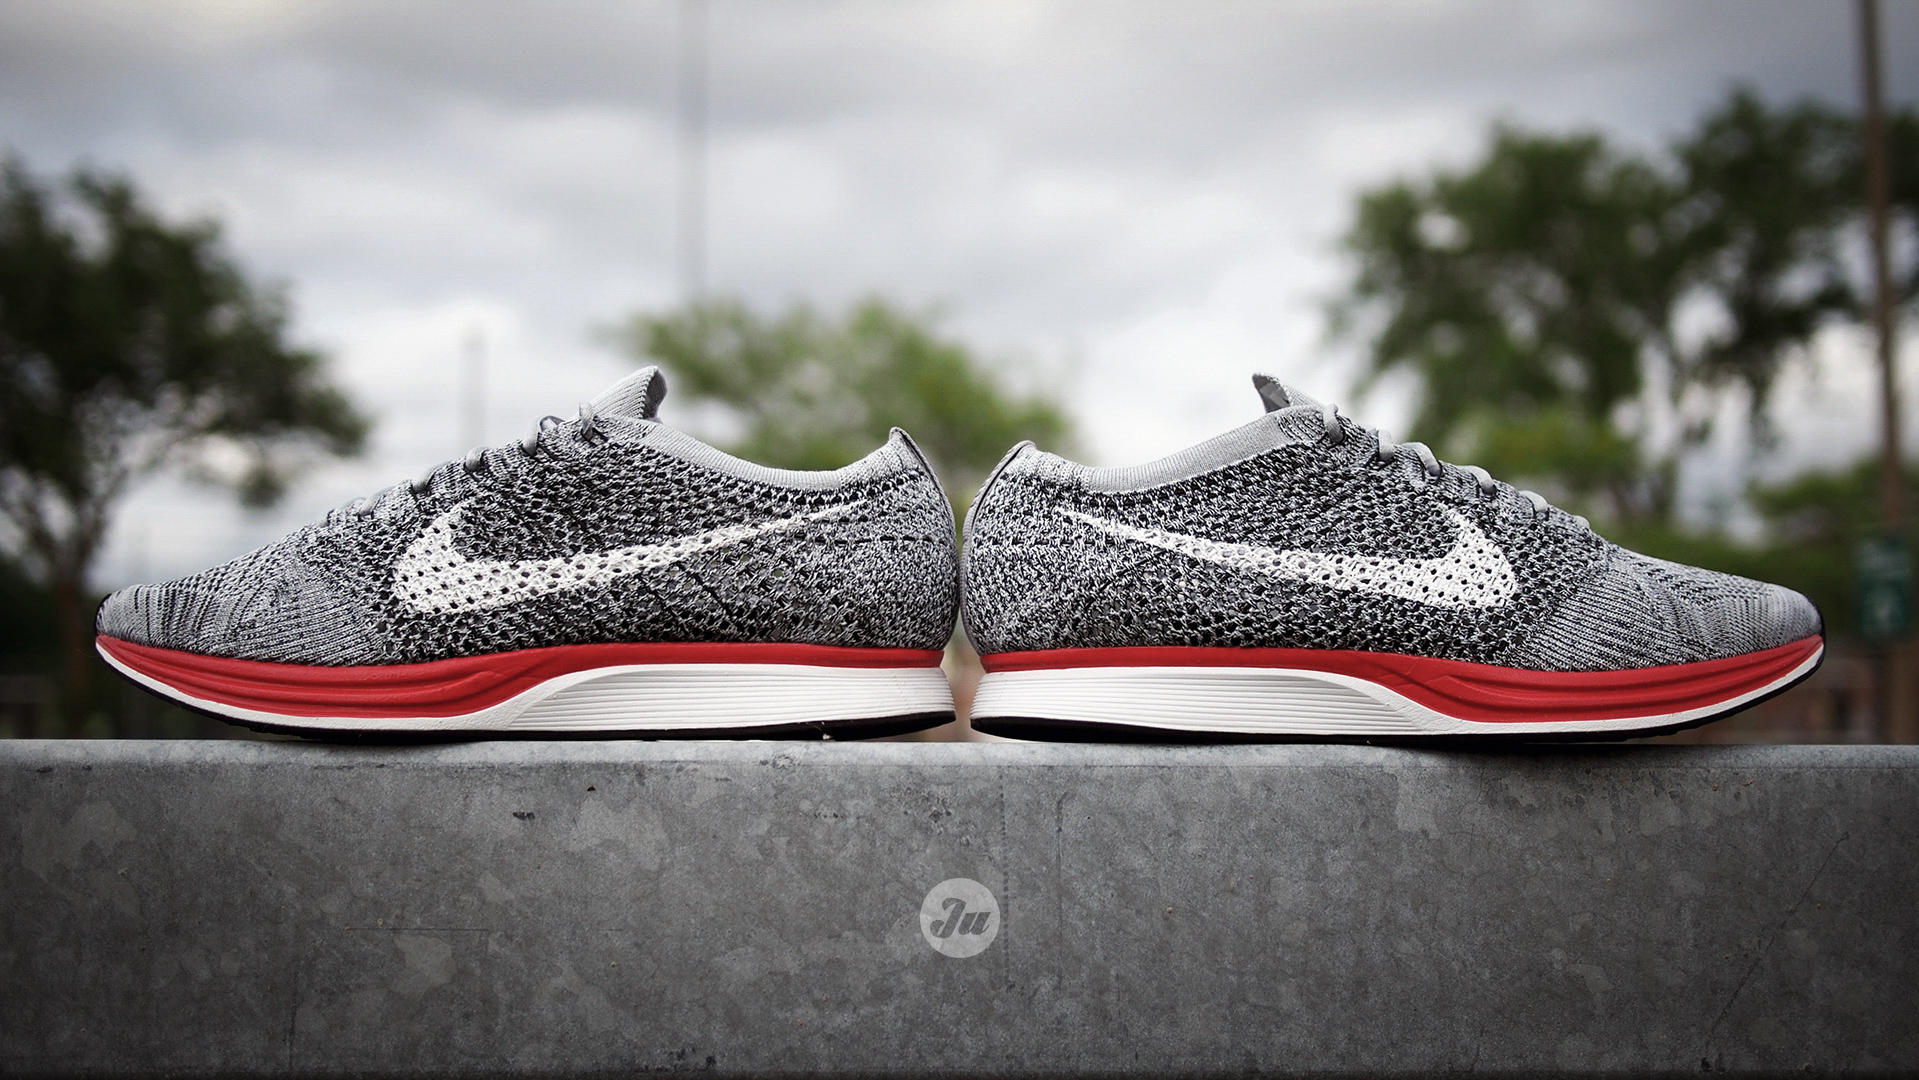 3b7c05a156255 On-feet video  Found a pair of Nike Flyknit Racer